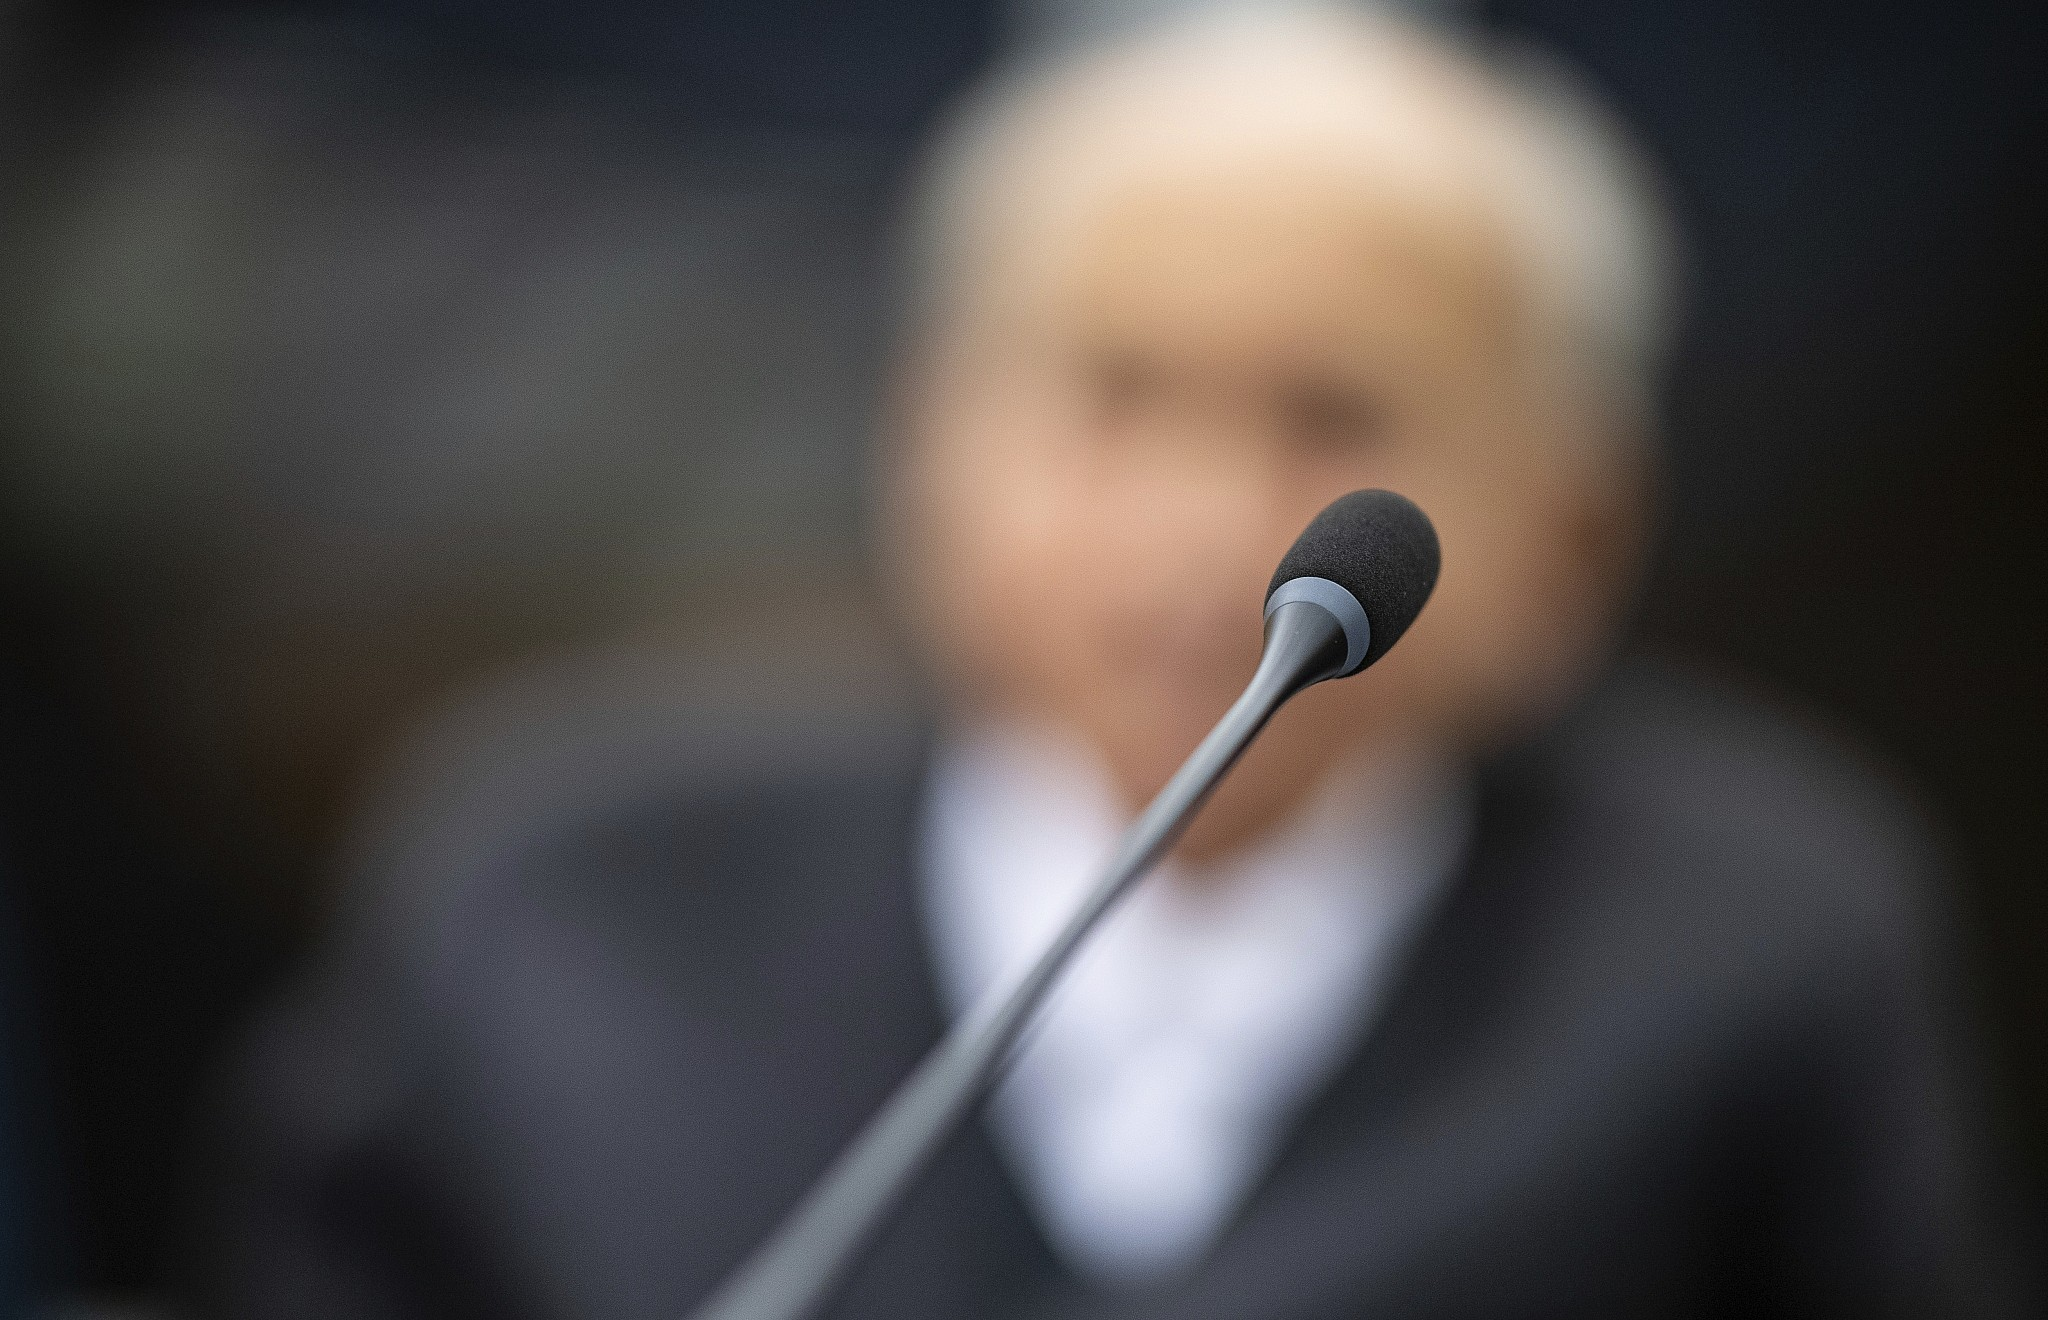 a2ae7c6f9 Ex-SS guard, 94, to testify at trial in Germany in rare move | The ...